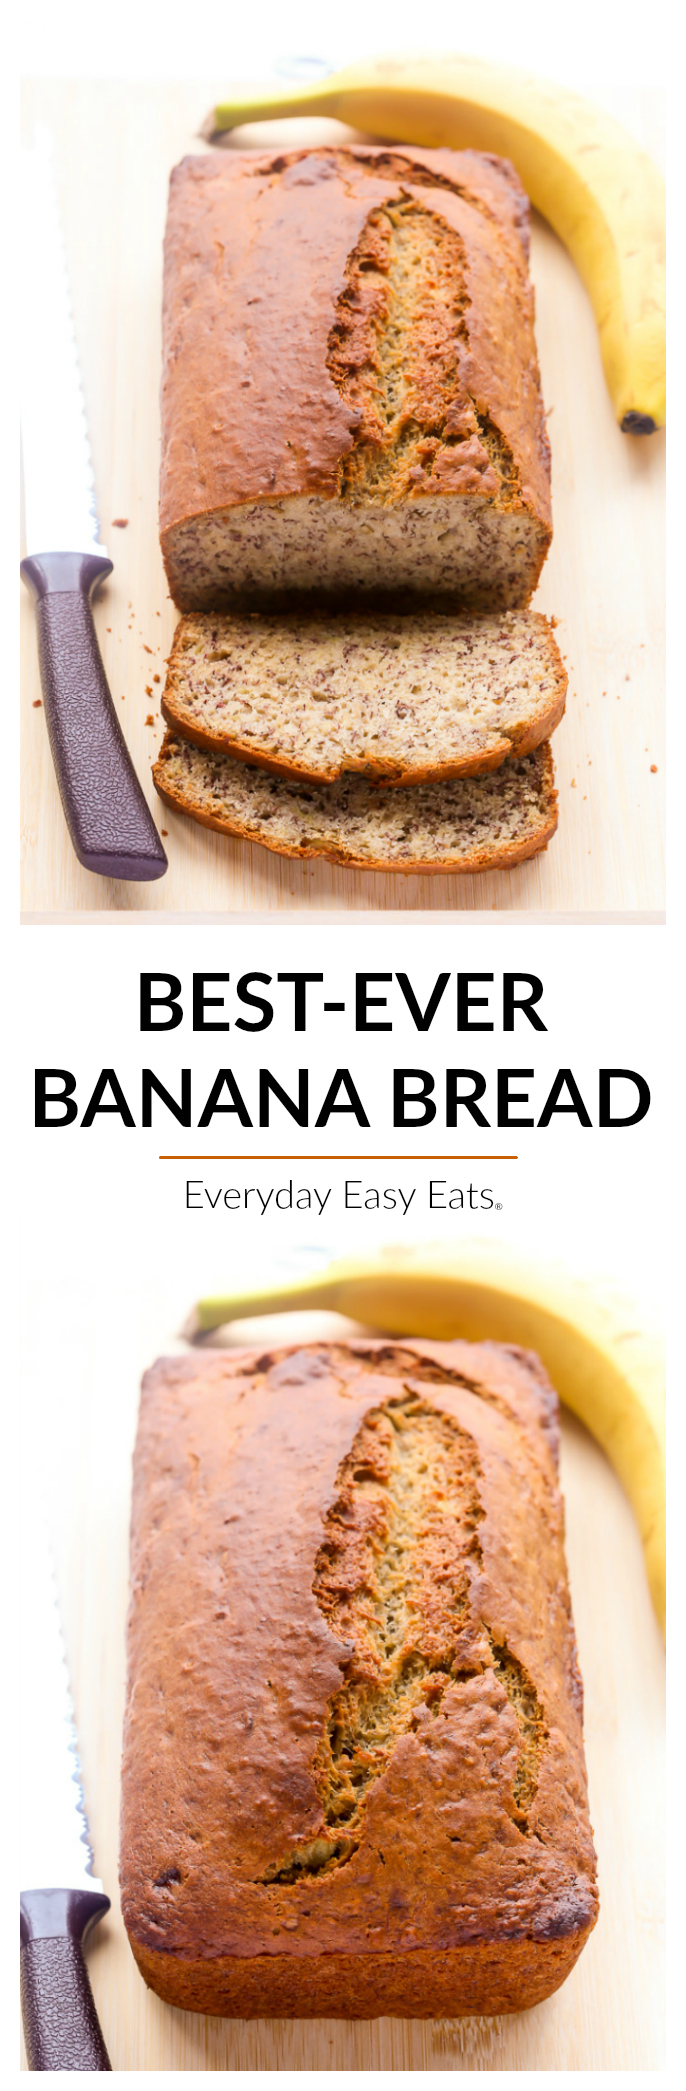 Best ever banana bread everyday easy eats everyday easy eats all photos and content are copyright protected please do not use any of my recipes text or images without prior permission forumfinder Choice Image